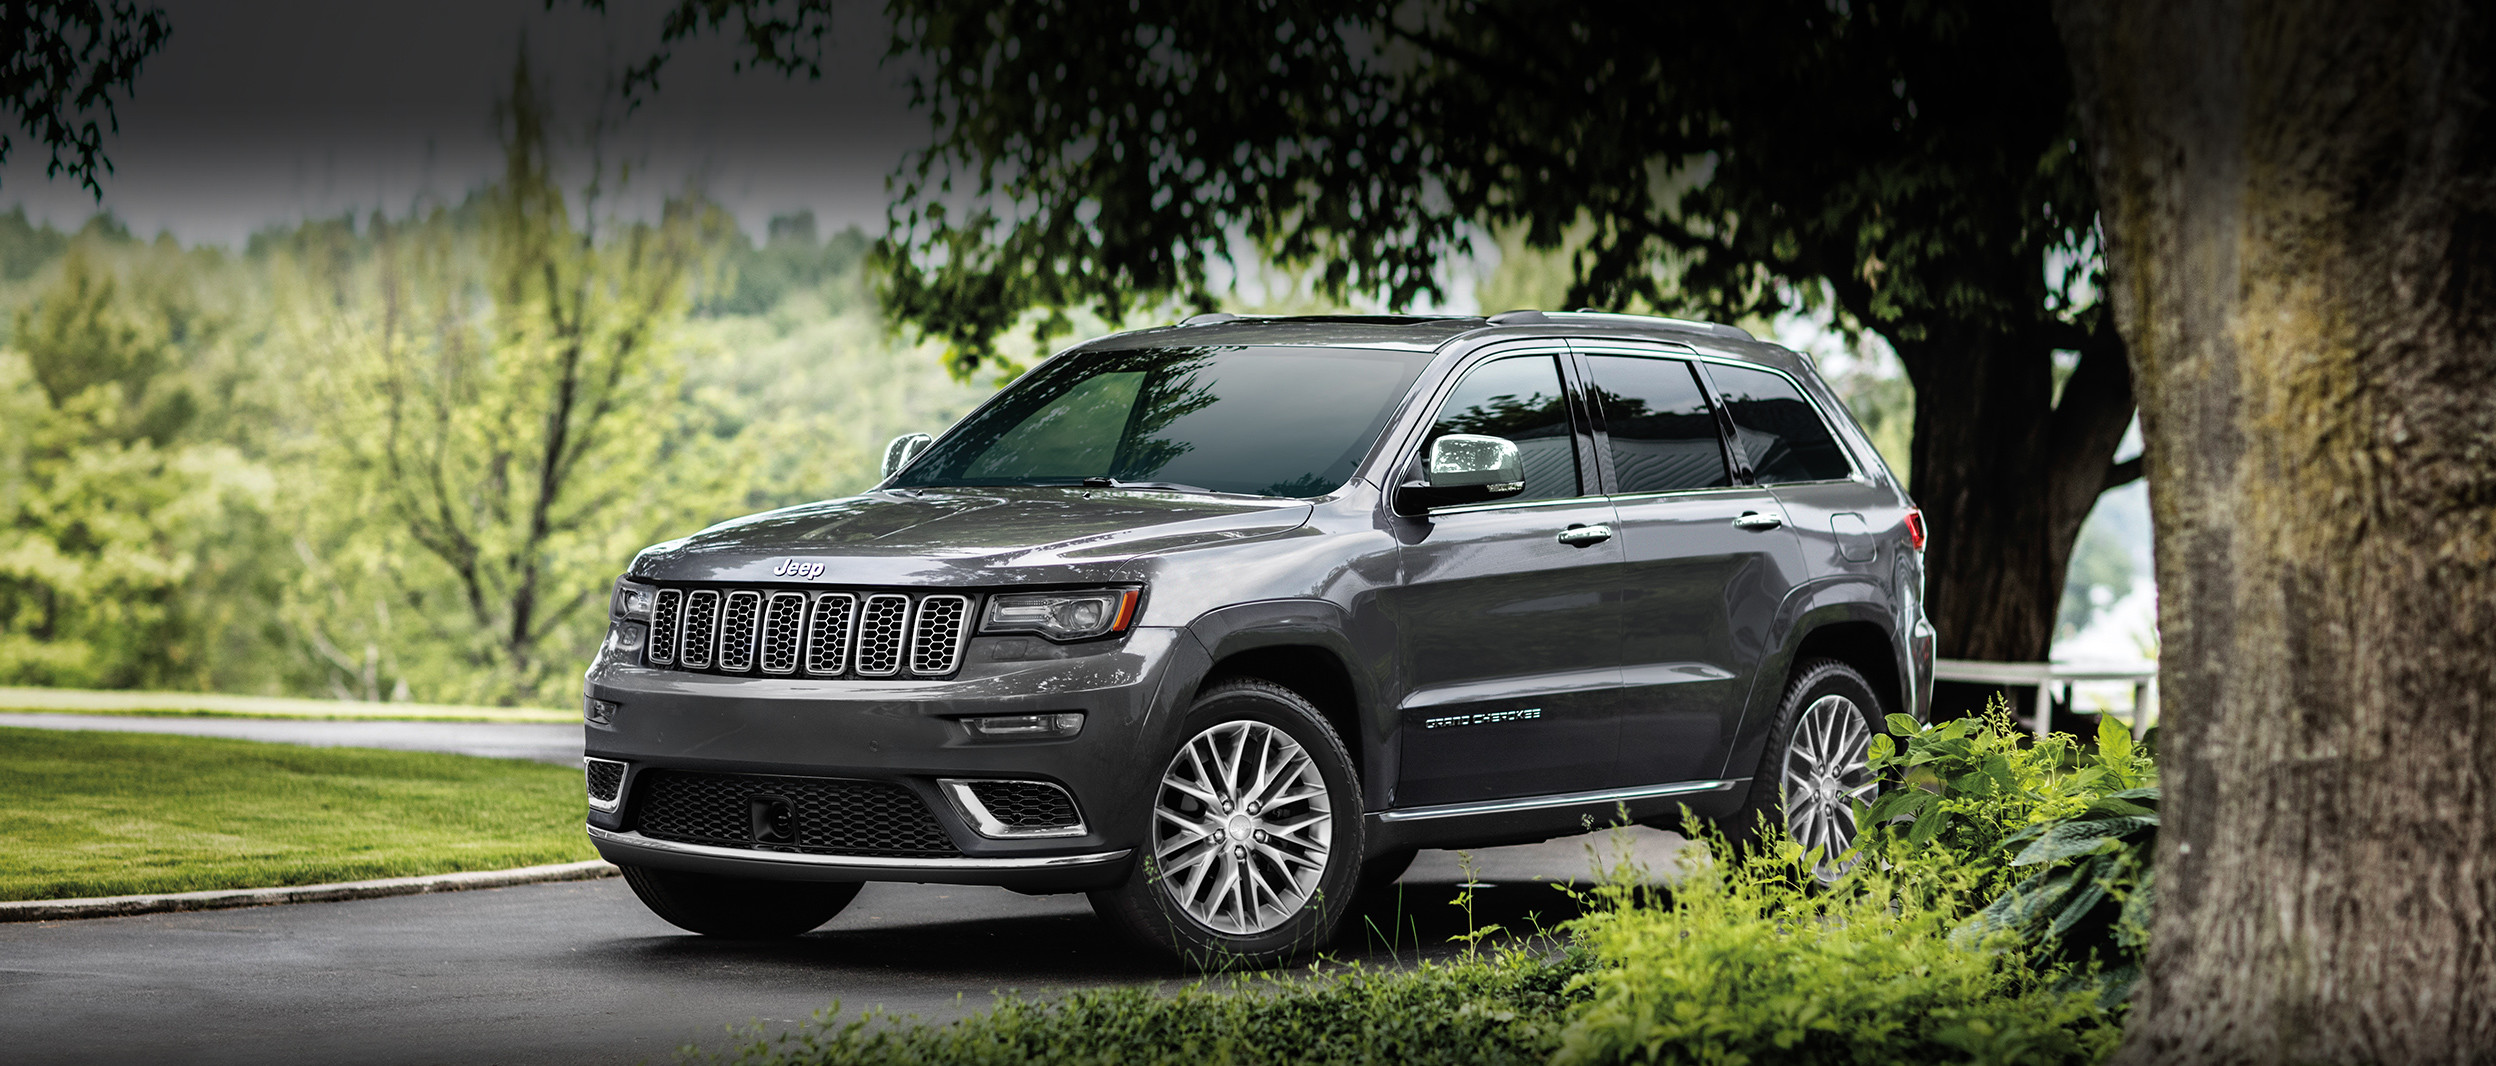 2018 jeep cherokee overland owners manual